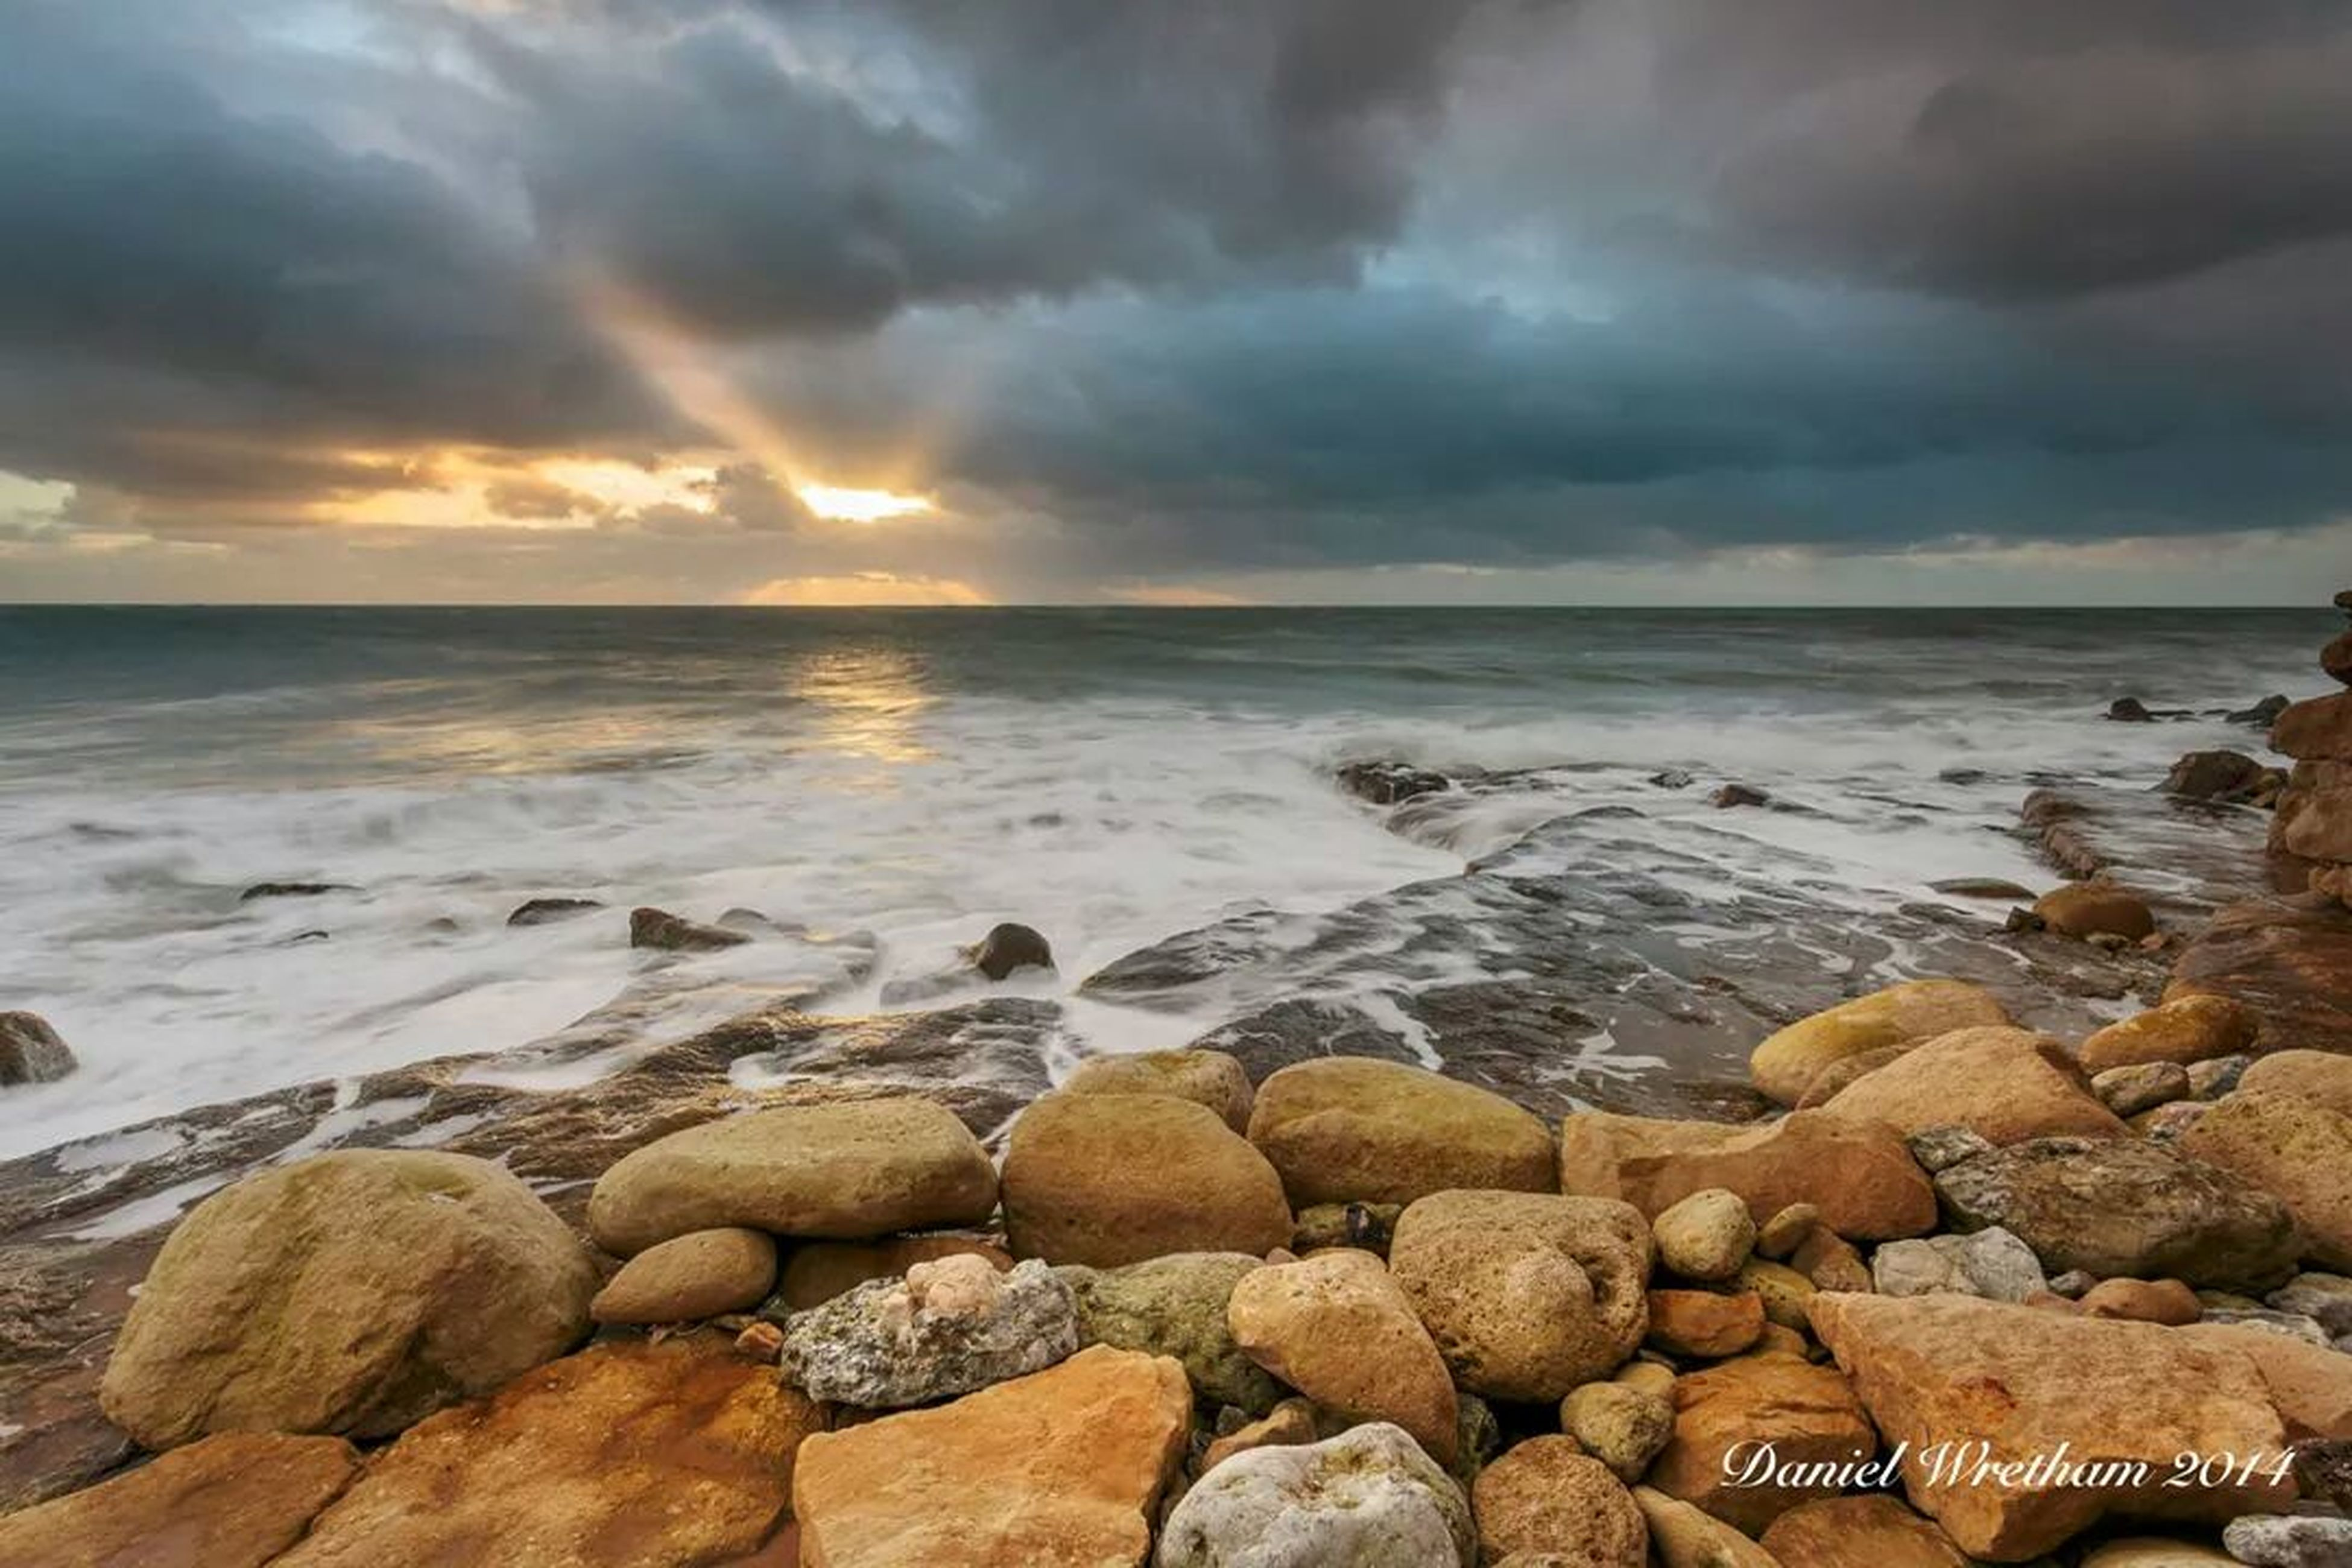 water, sky, sea, horizon over water, cloud - sky, scenics, beauty in nature, tranquil scene, tranquility, sunset, beach, cloudy, nature, shore, rock - object, weather, idyllic, cloud, stone - object, overcast